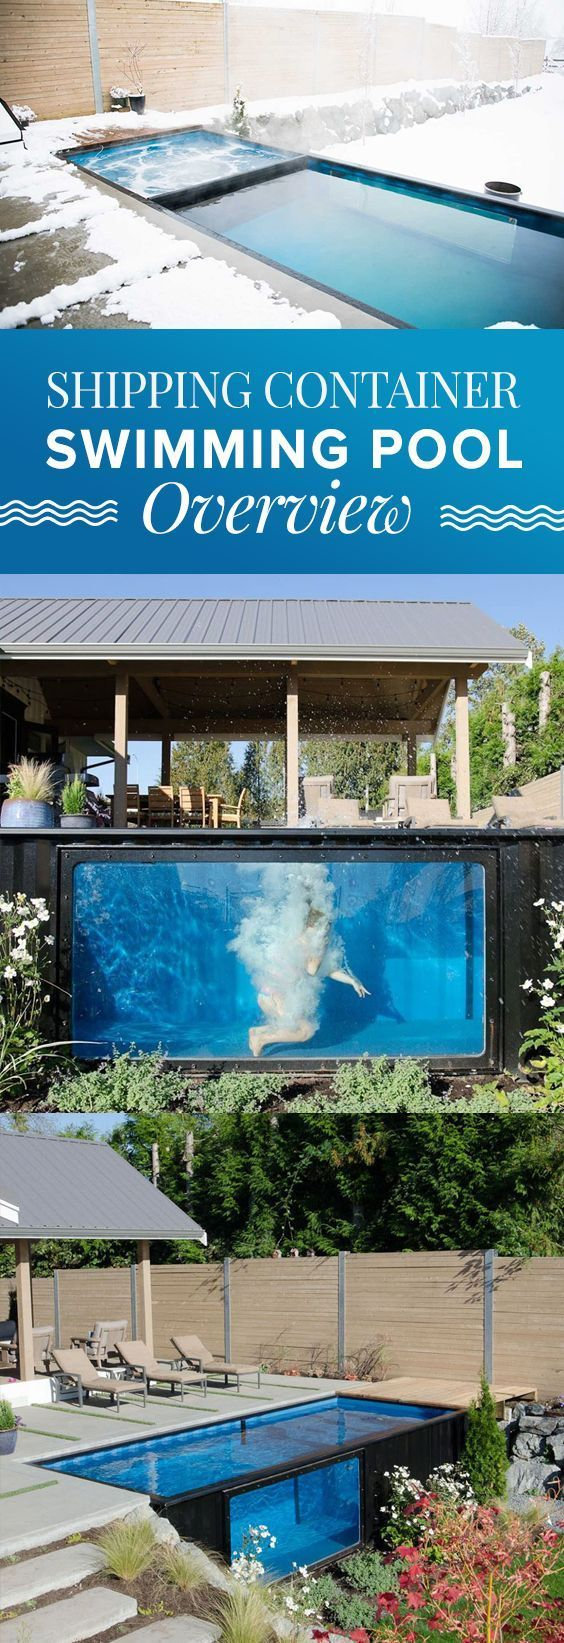 Shipping container swimming pool • and overview and inspiration #FavoriteContainerHomes